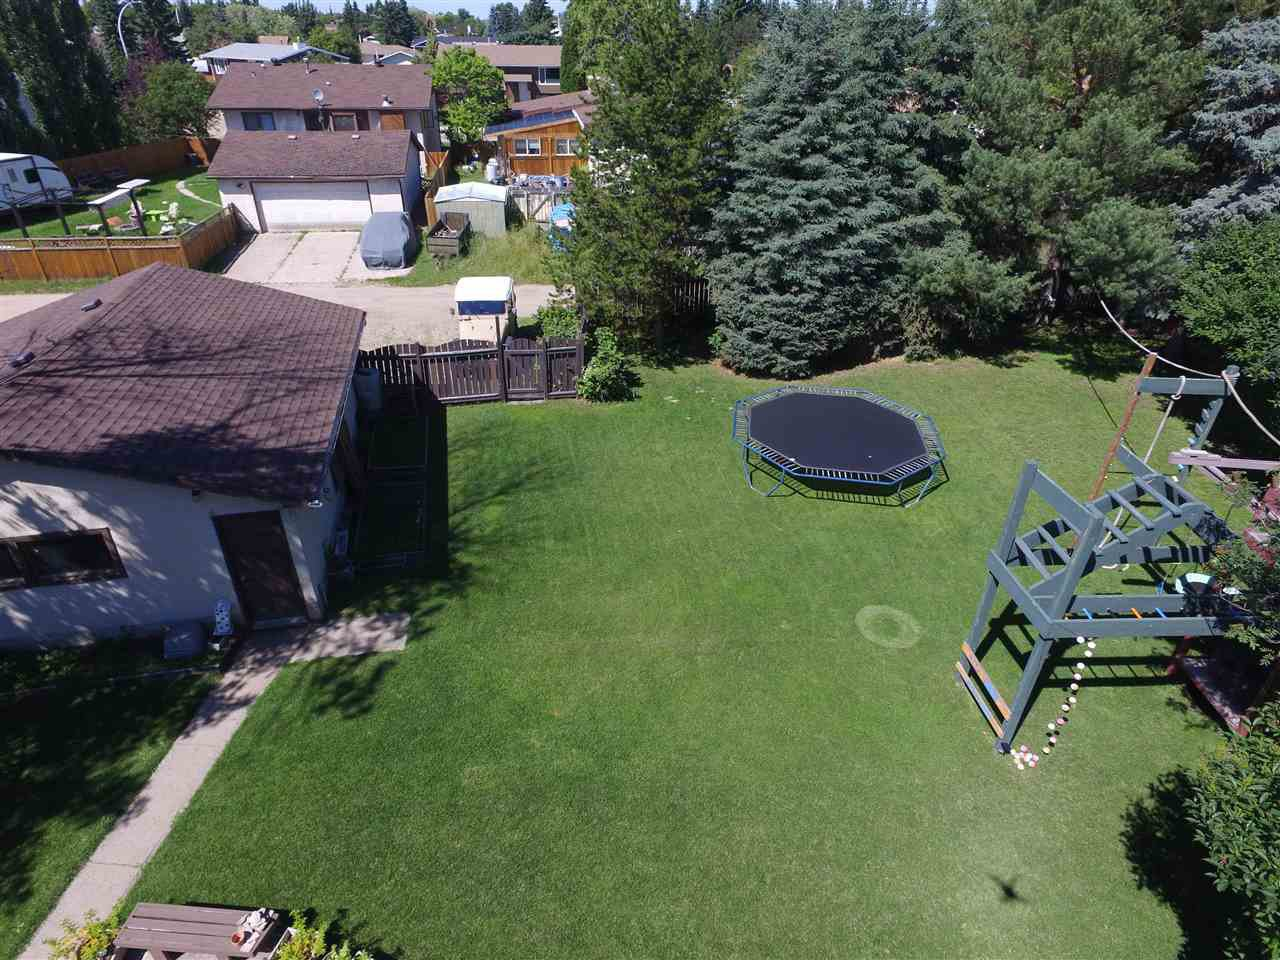 Photo 26: Photos: 125 Spruce Crescent: Wetaskiwin House for sale : MLS®# E4207728